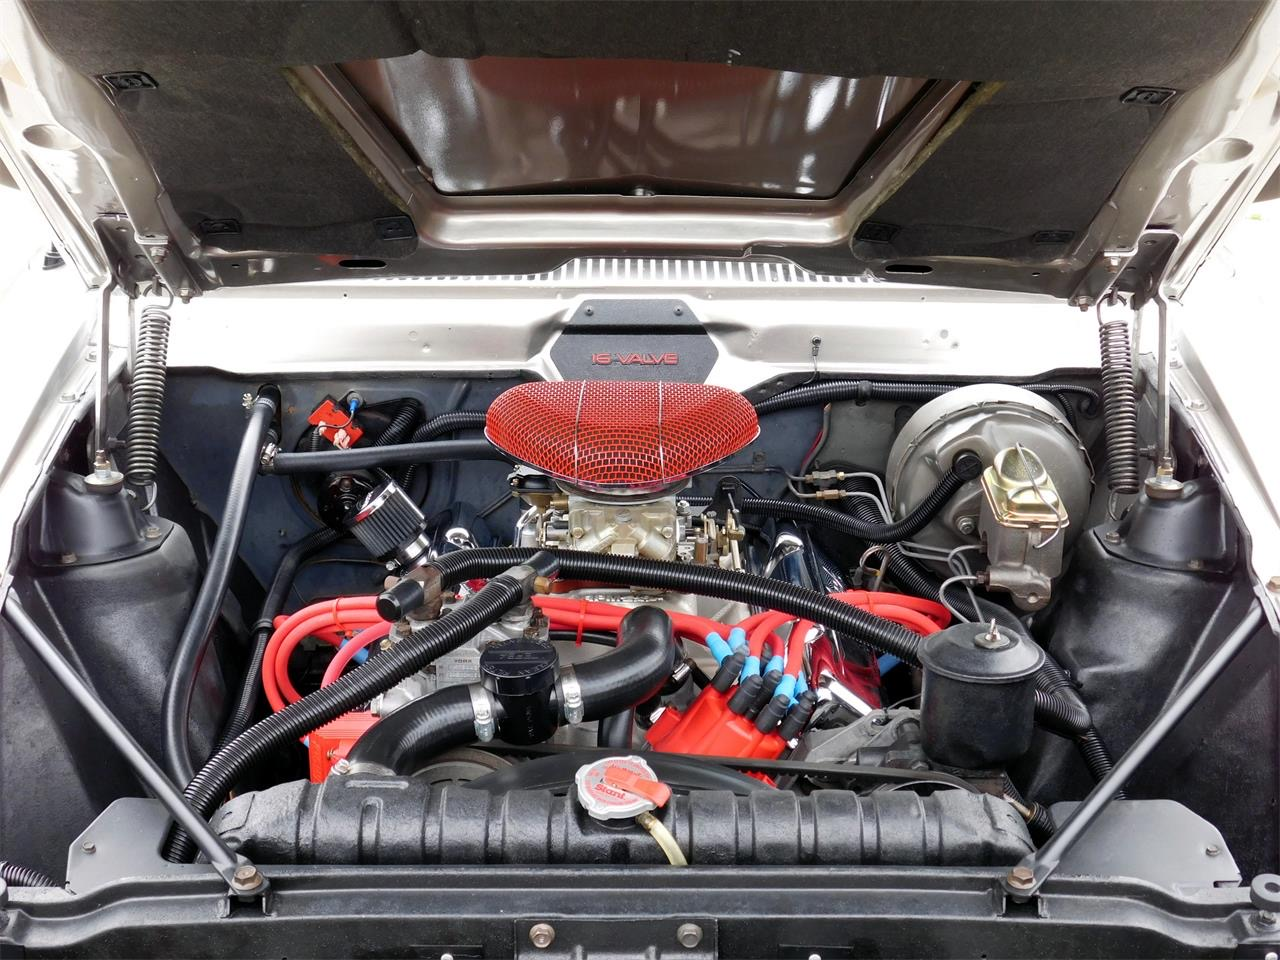 Engine bay simplified, reorganized